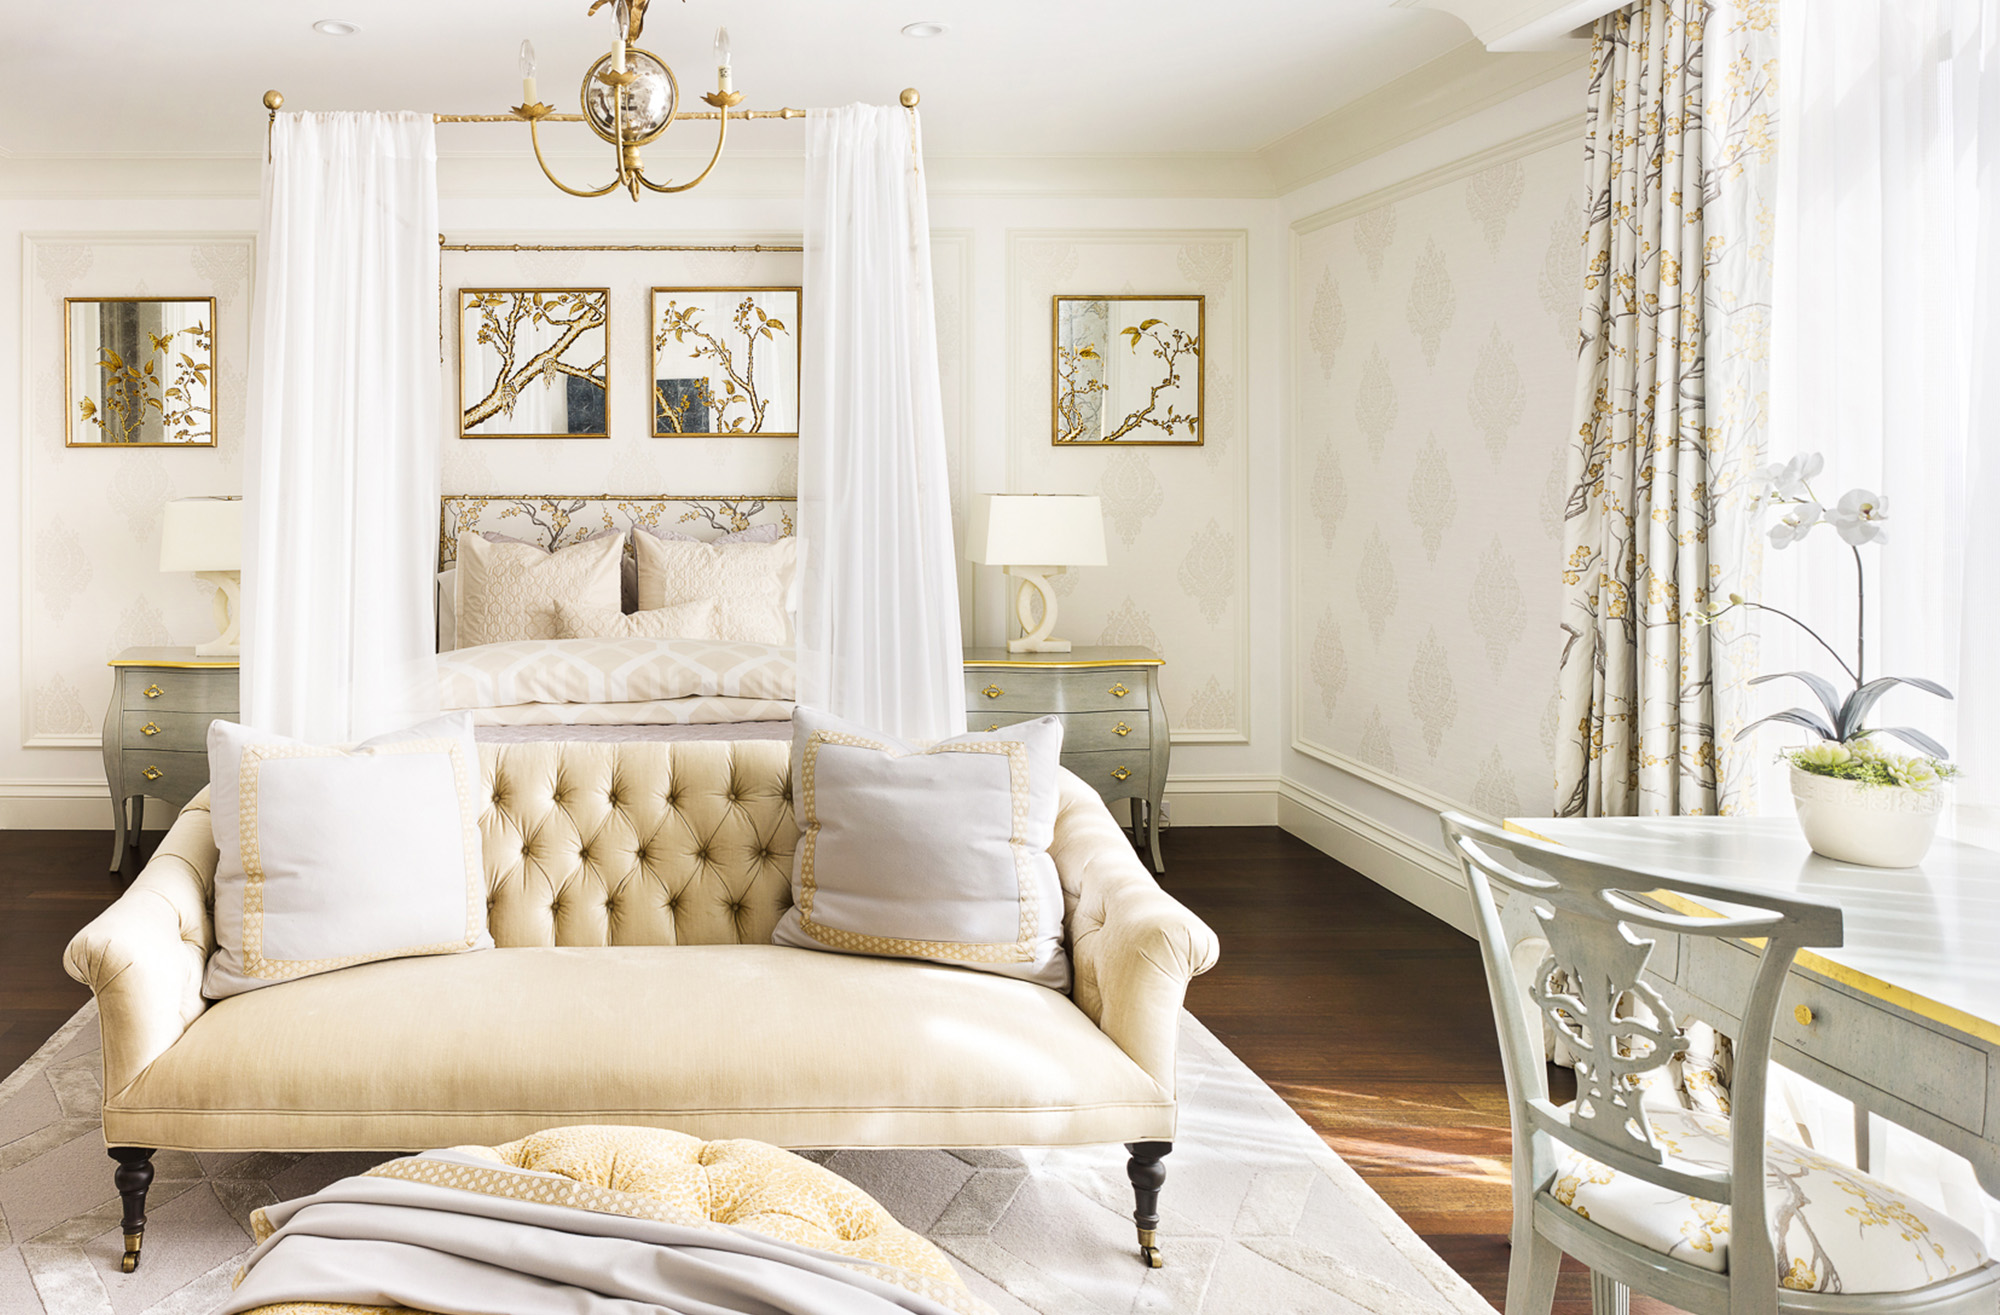 French Inspired Bedroom & Bath Tara Dudley Interiors